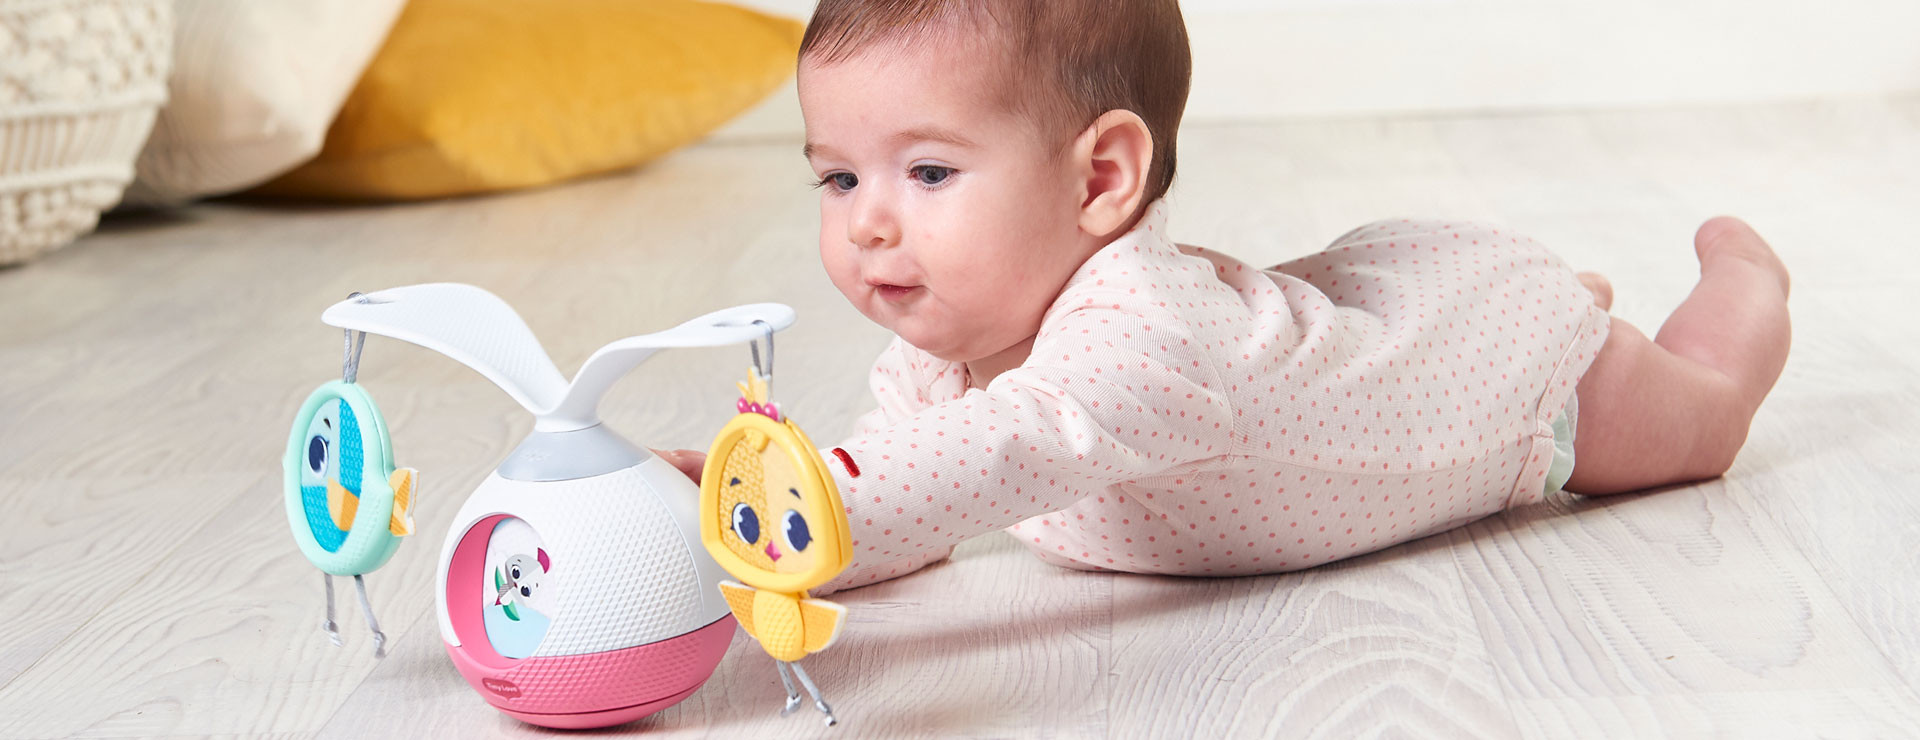 Bringing the mobile experience to fun tummy time!